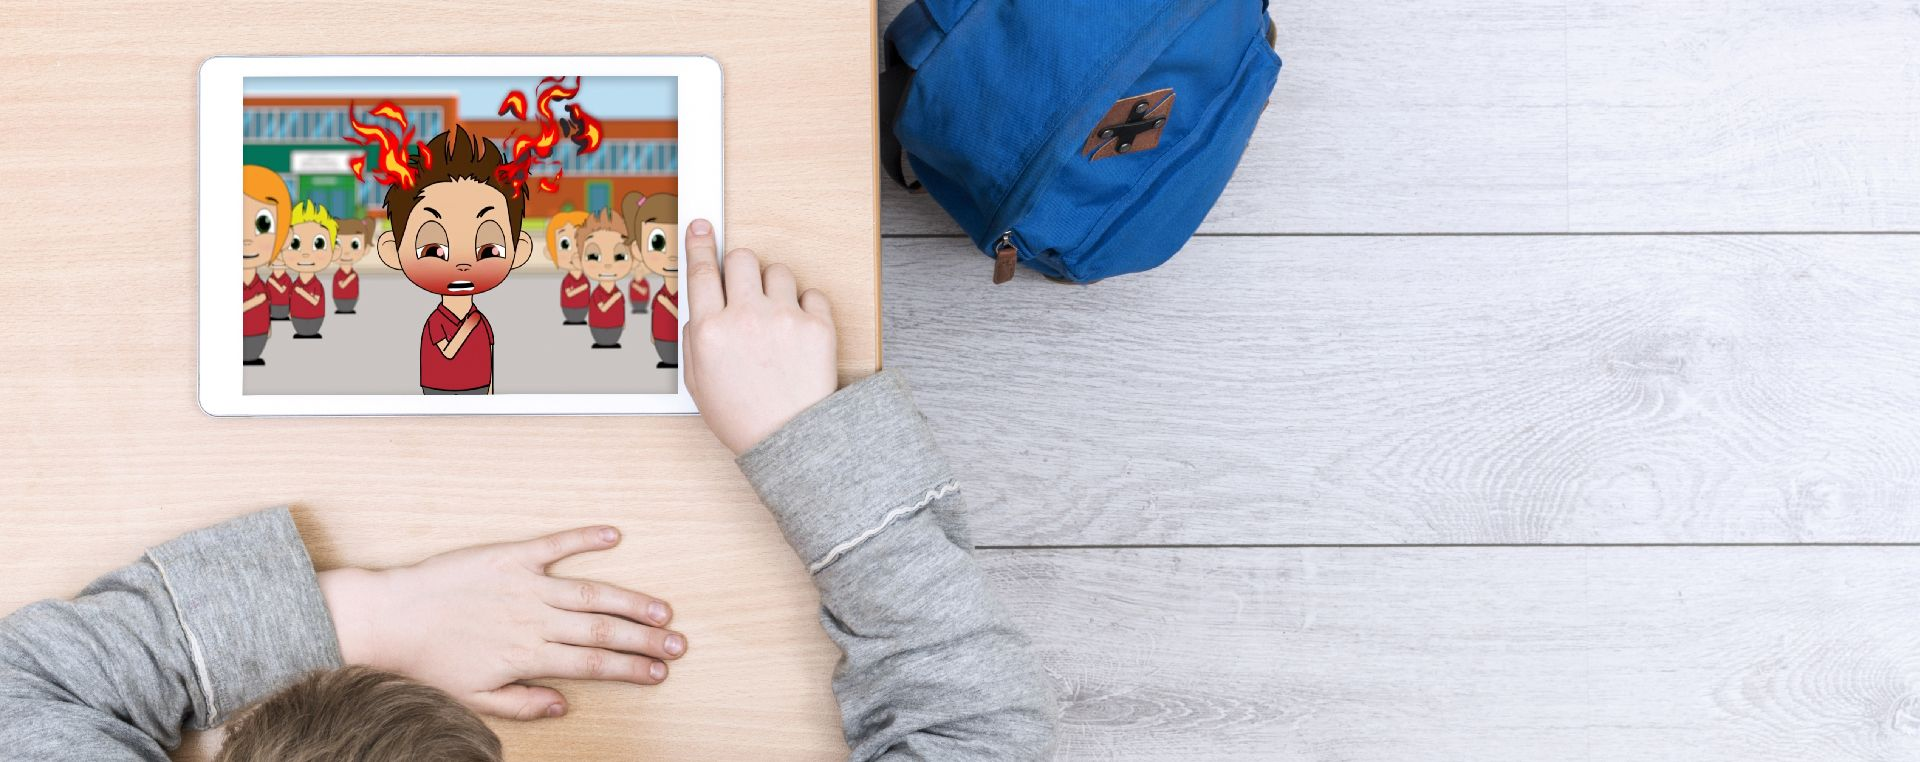 A young boy watches an Ipad on a table, showing the Just Talk mental health animation.